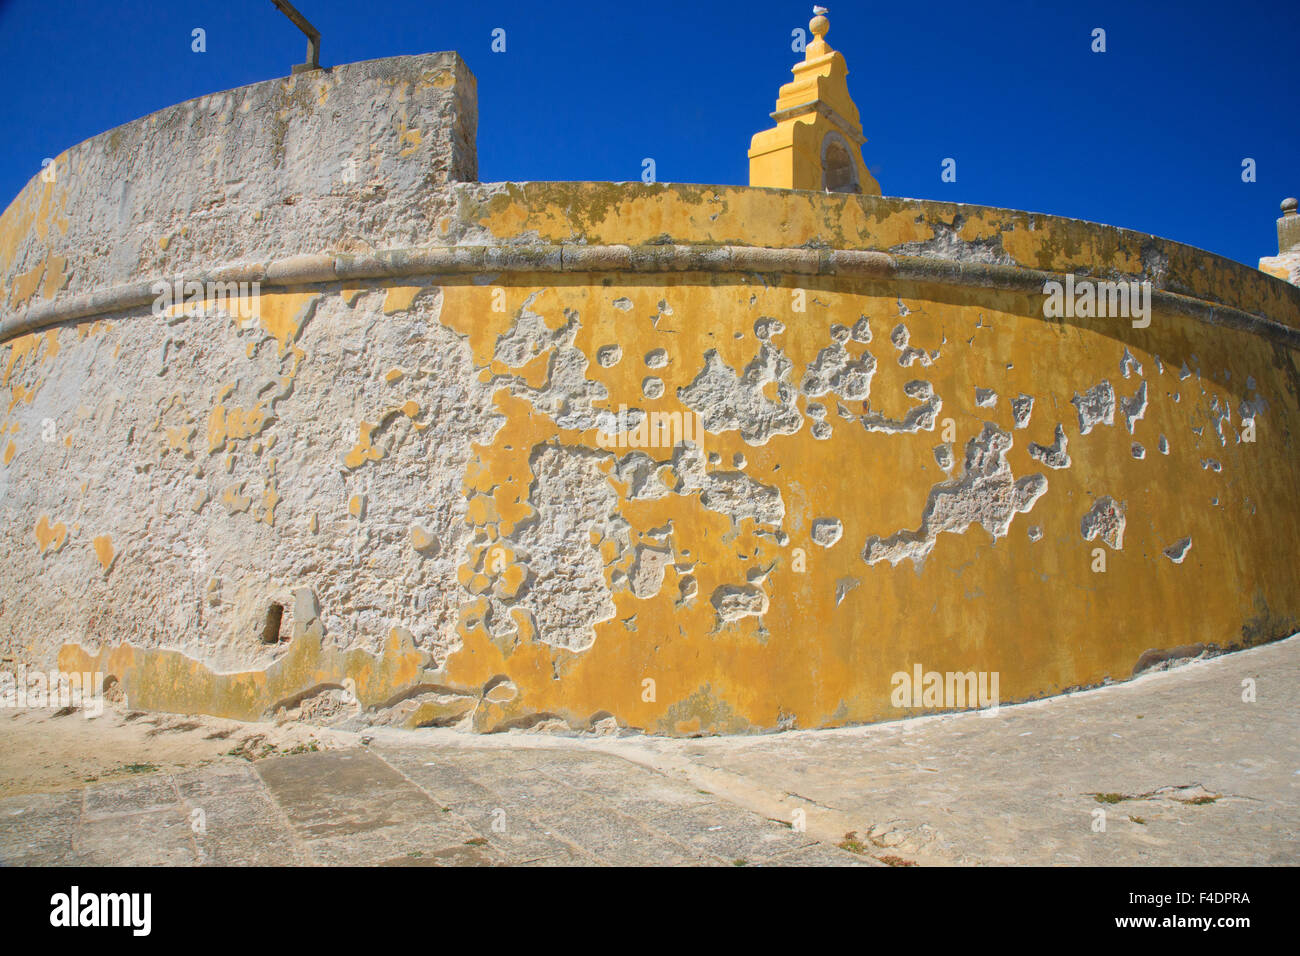 detail of the round bastion enclosing the Peniche Fortress - Stock Image